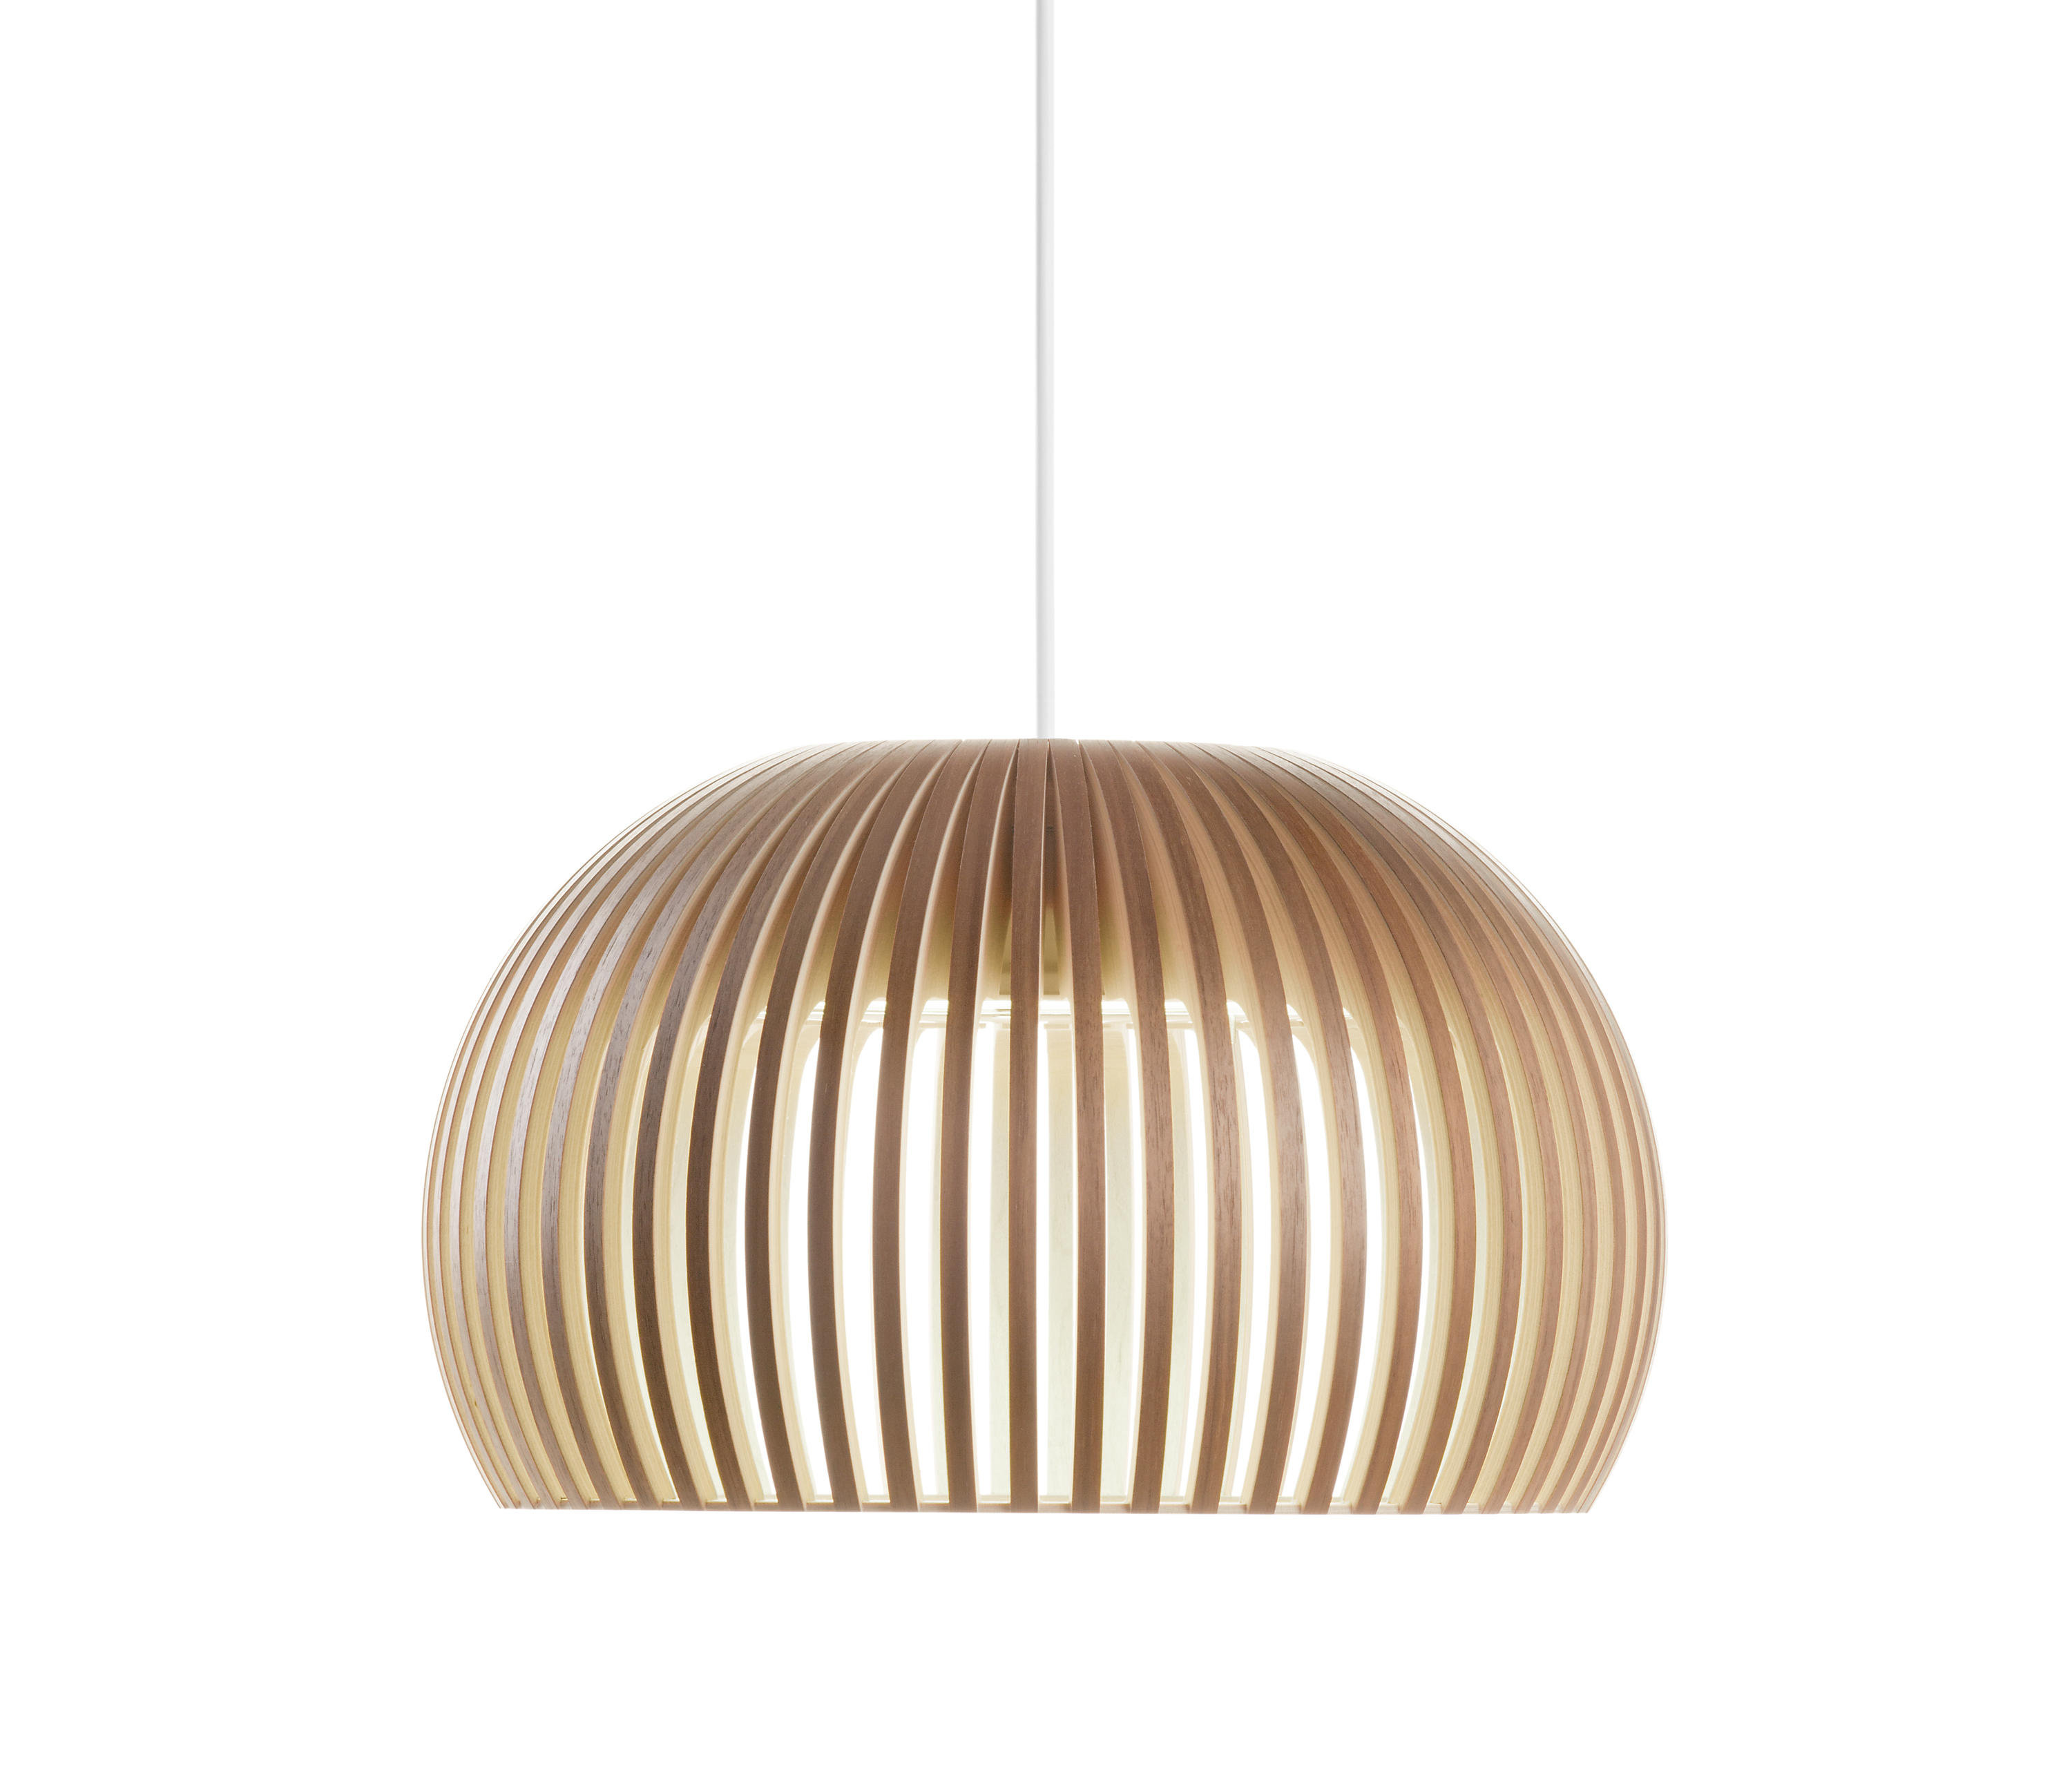 ATTO 5000 PENDANT LAMP General Lighting From Secto Design Architonic